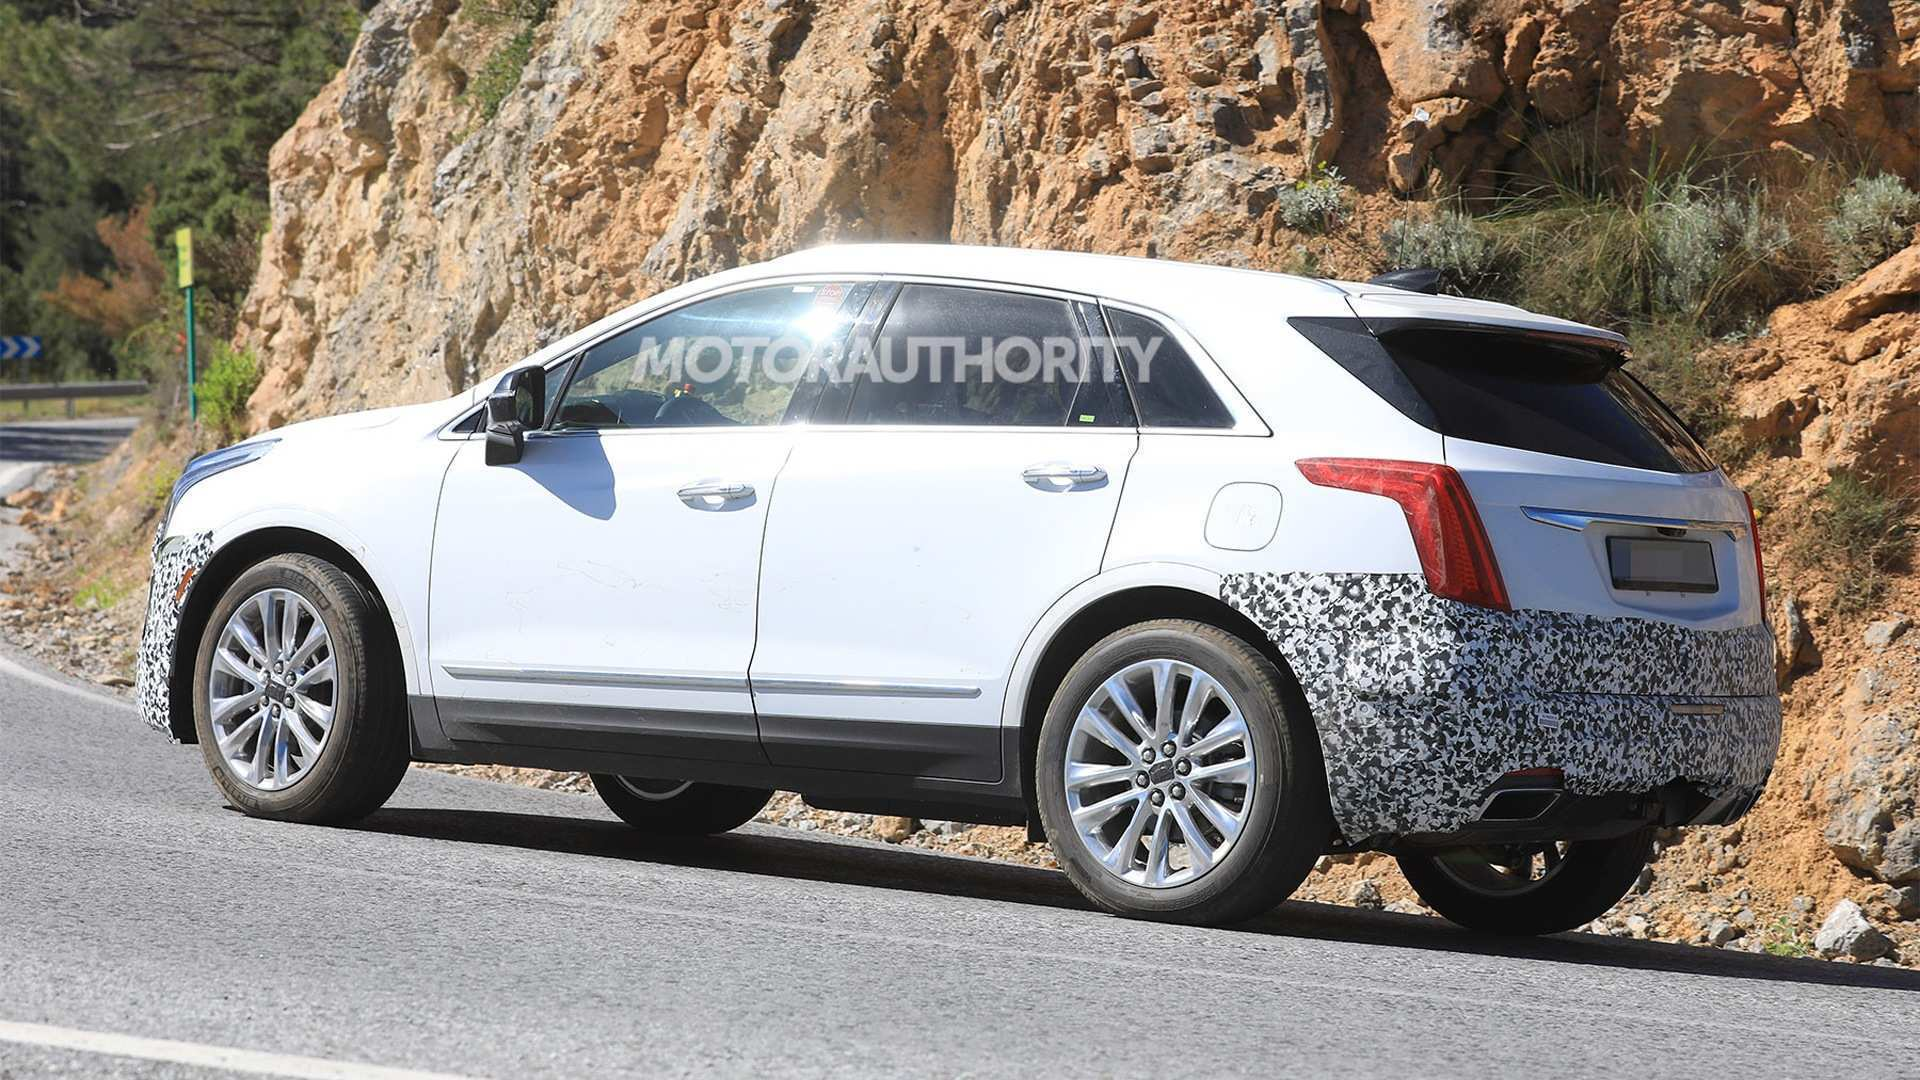 64 New Spy Shots 2020 Cadillac Xt5 Prices by Spy Shots 2020 Cadillac Xt5